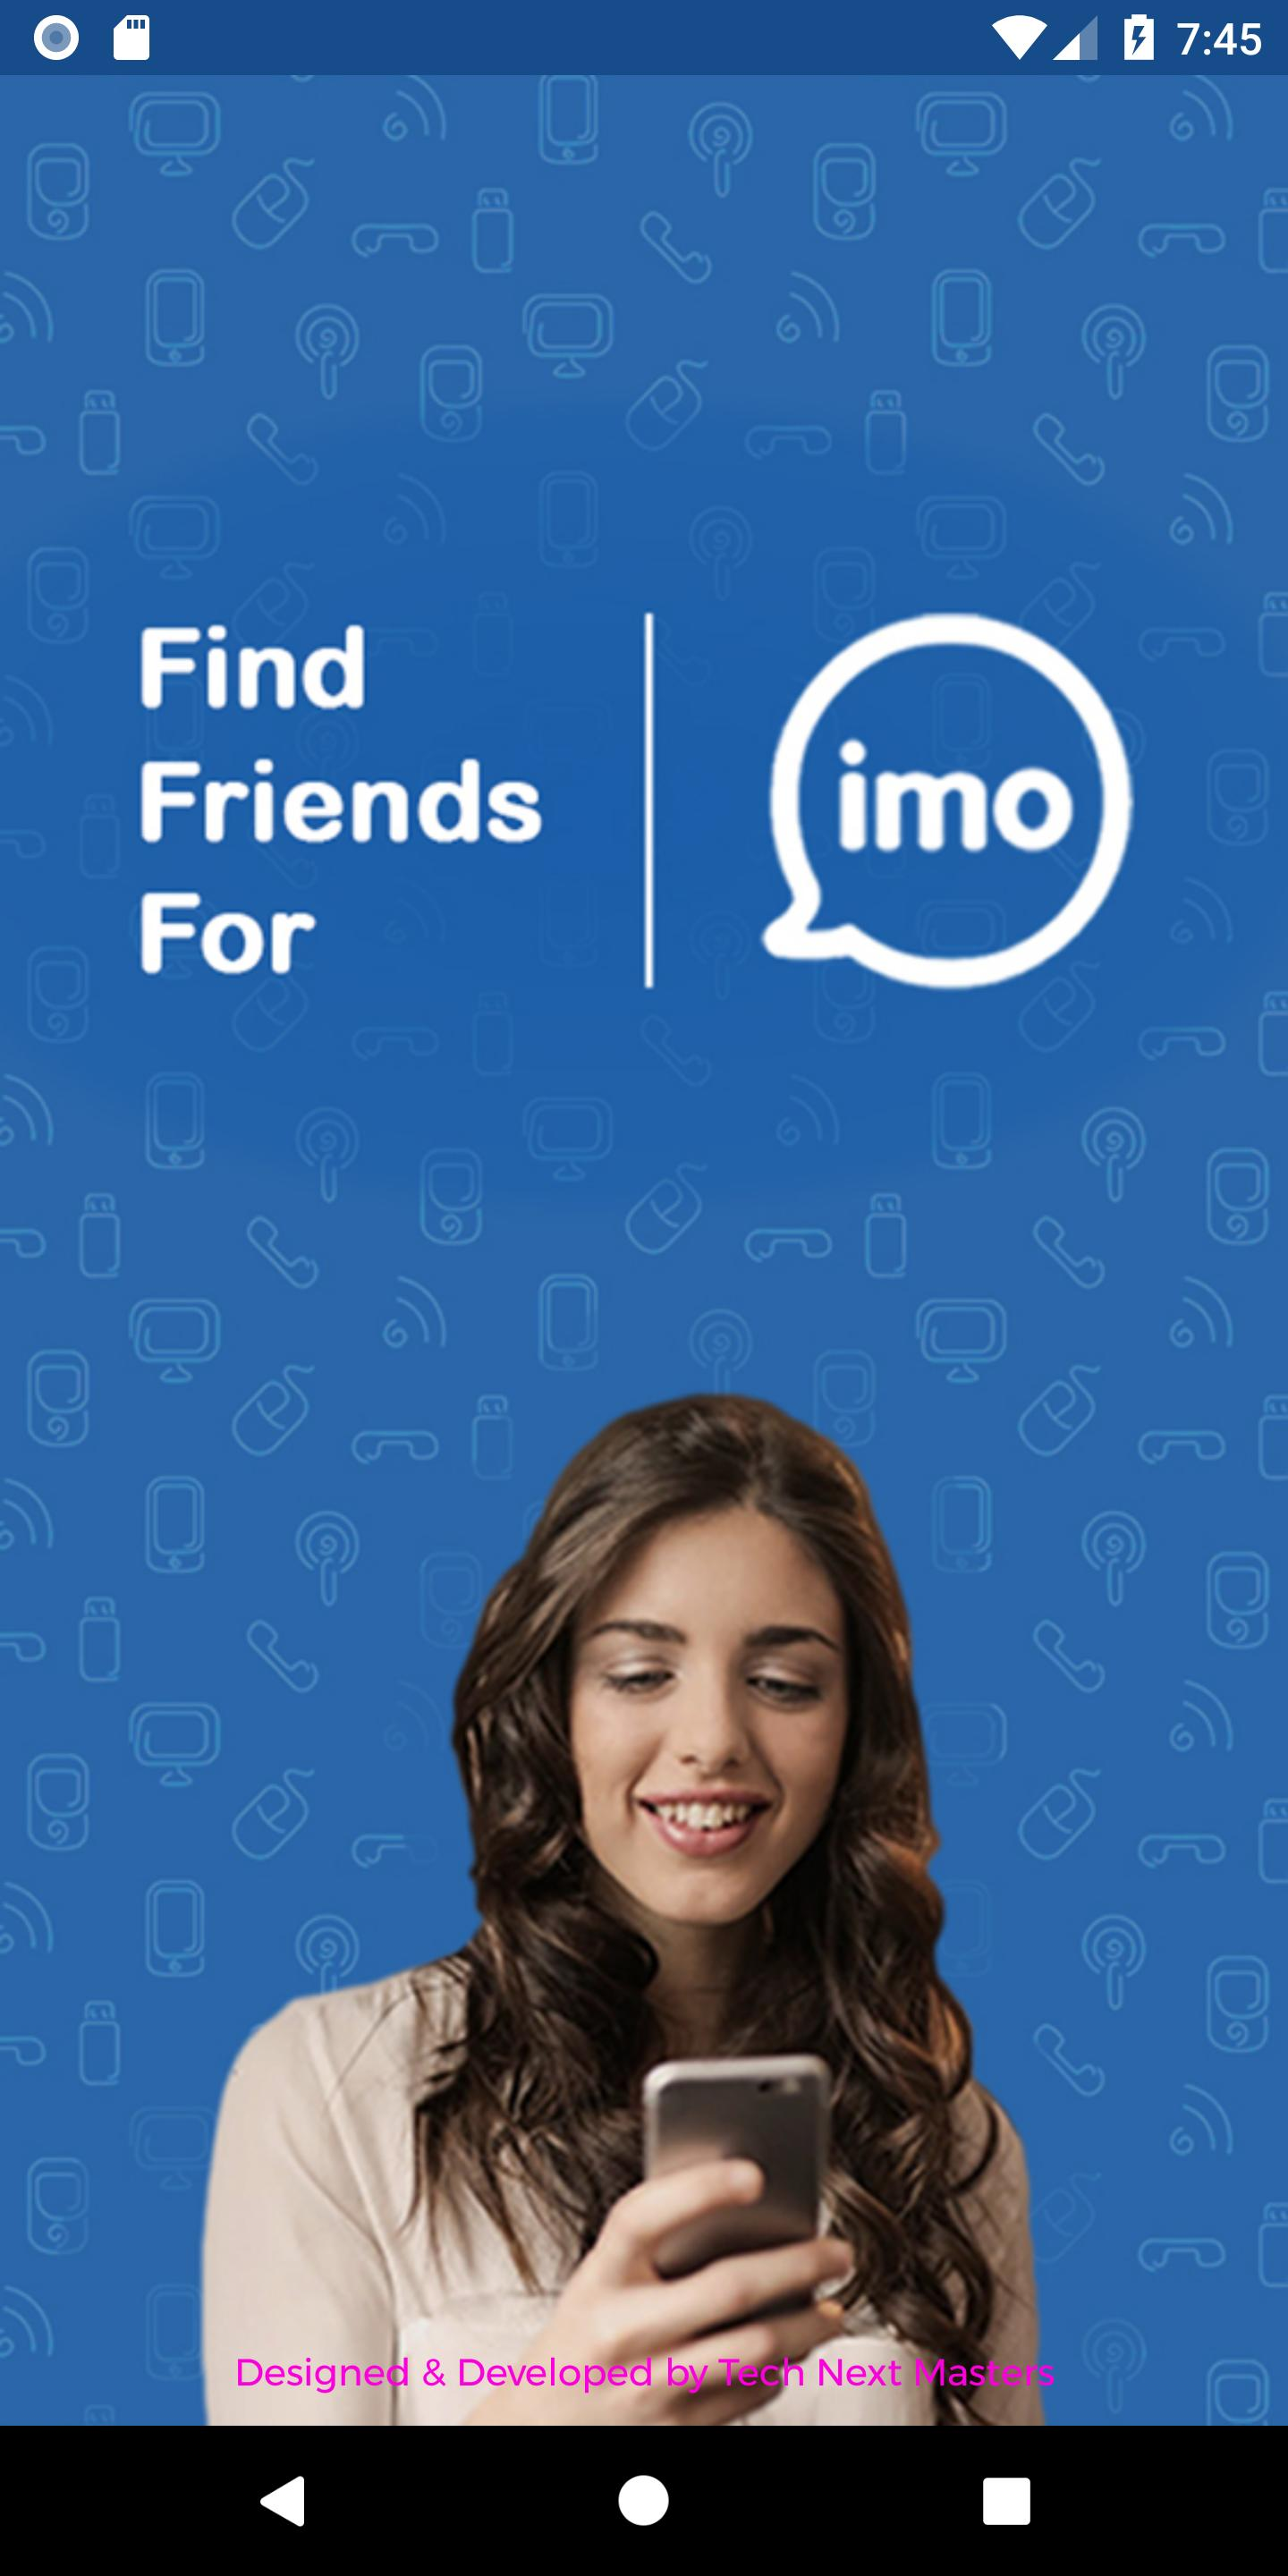 Find Friends For IMO for Android - APK Download